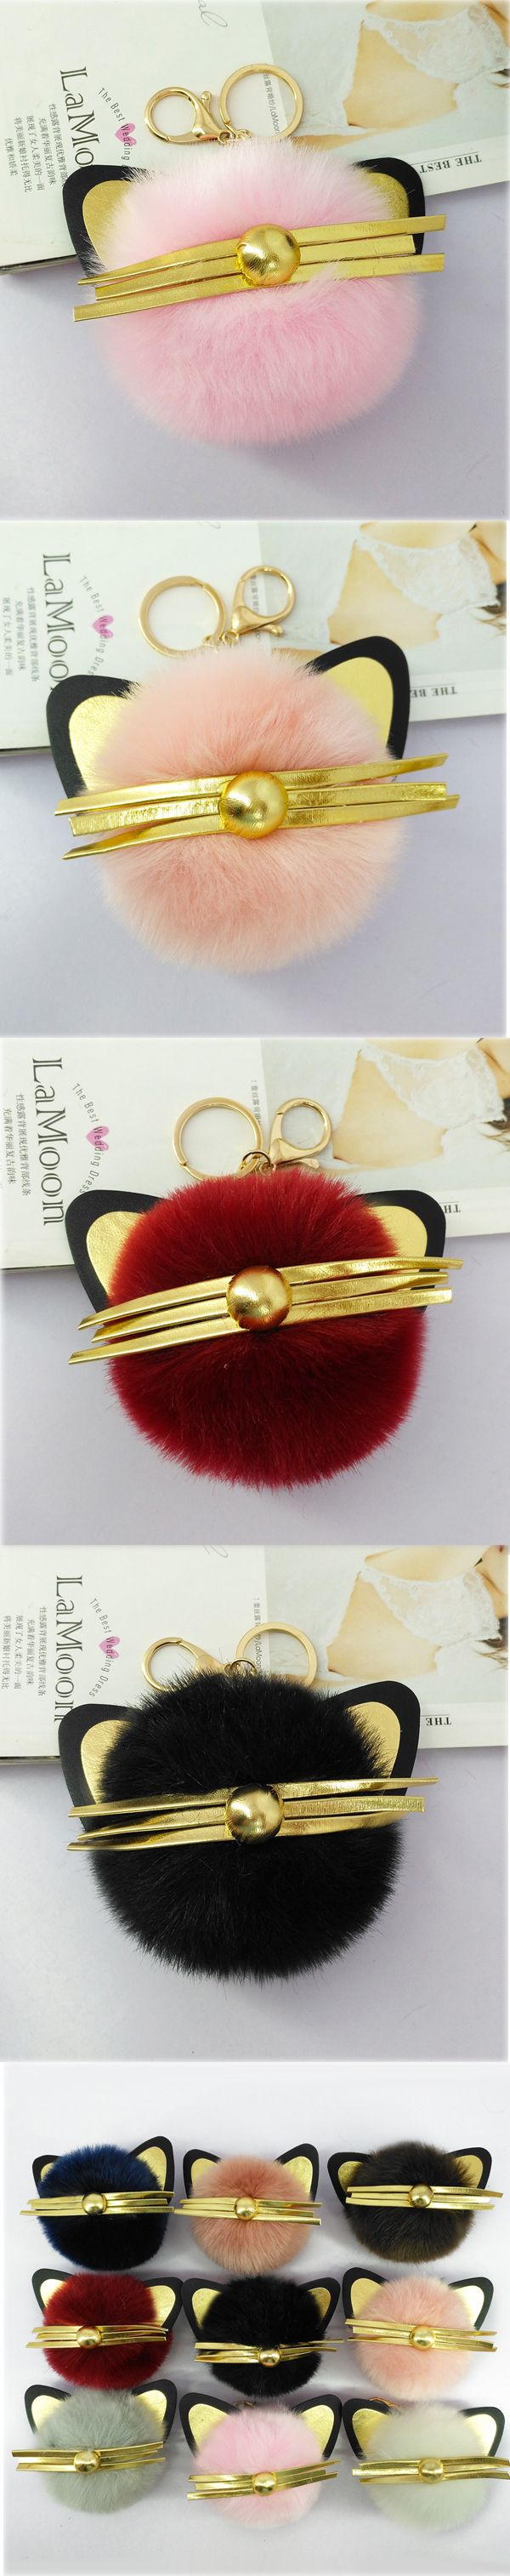 Cute Girls Handmade Pompon Ball Cat Key Chains Pokemon Doll Keyring Wallet Bags Pendants Car Key Decoration Keychains Souvenirs